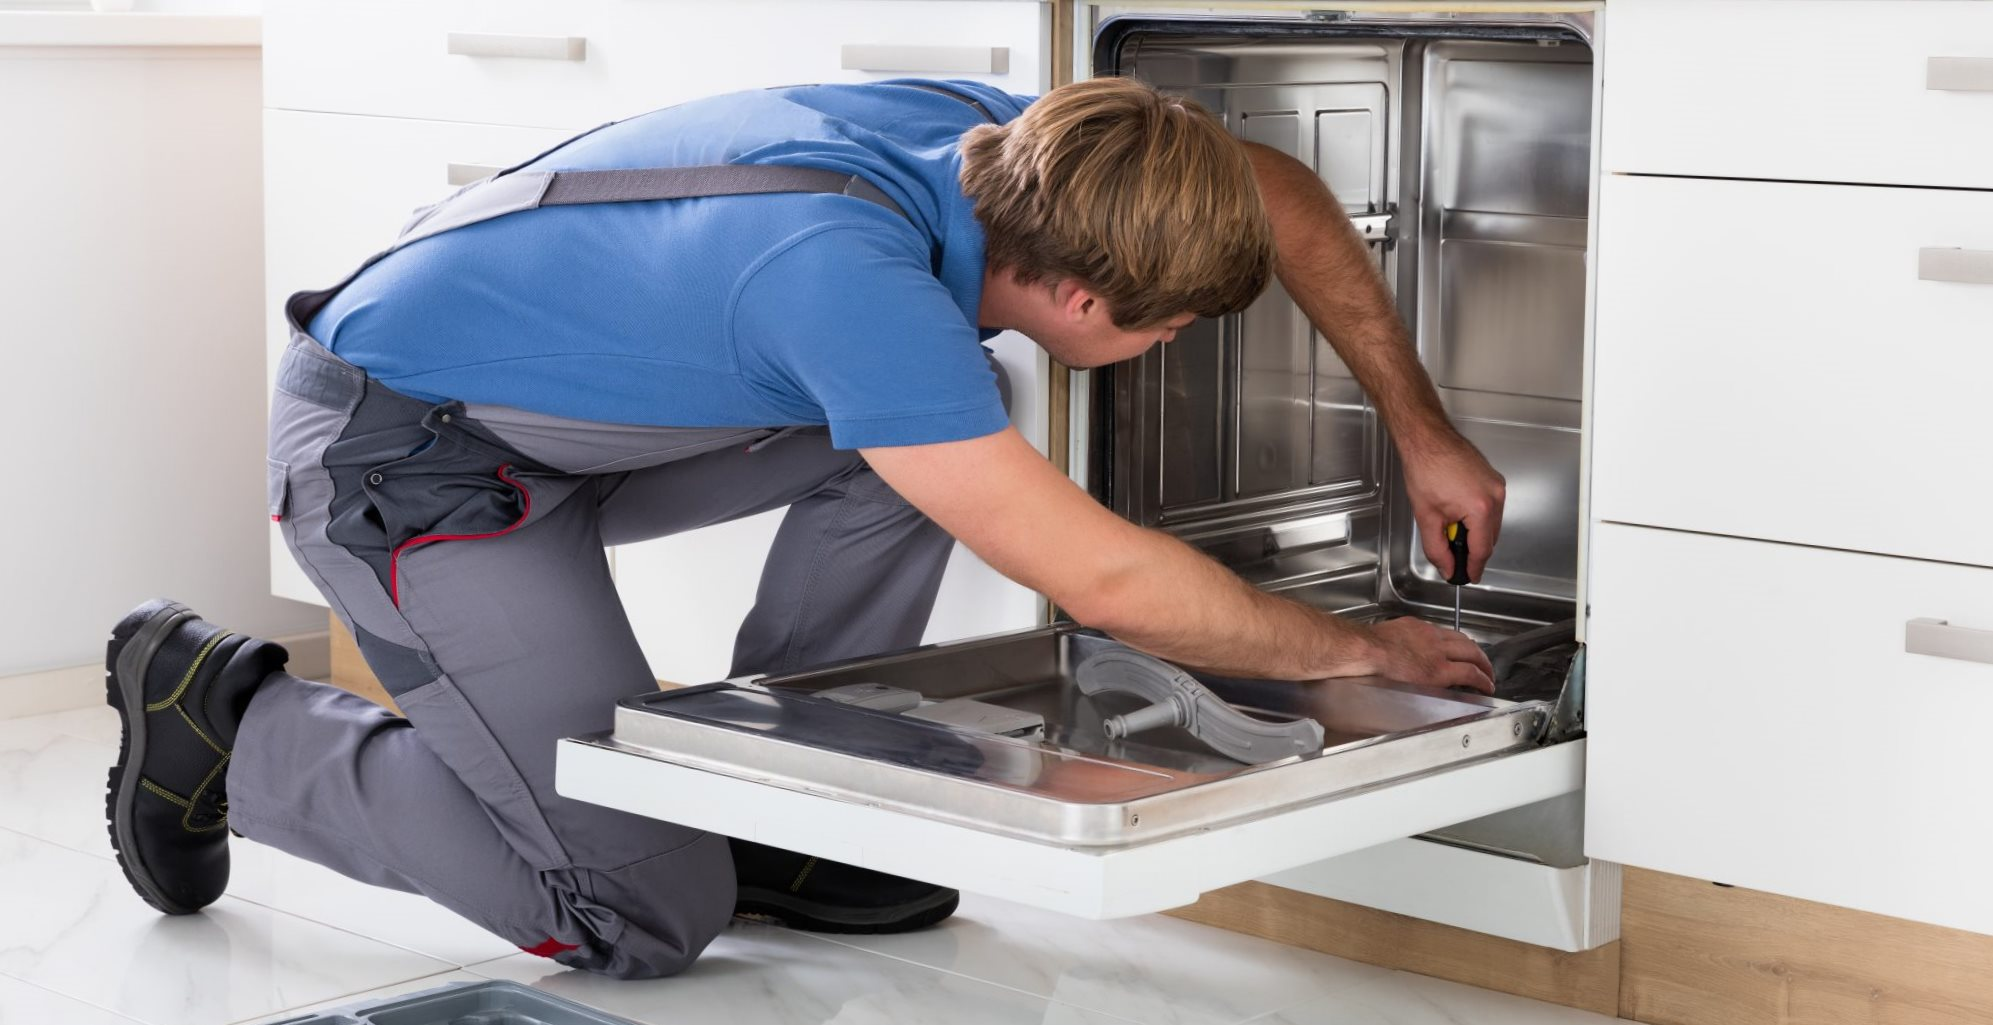 Whom To Ask For Fixing Your Dishwasher's Leakage in San Jose